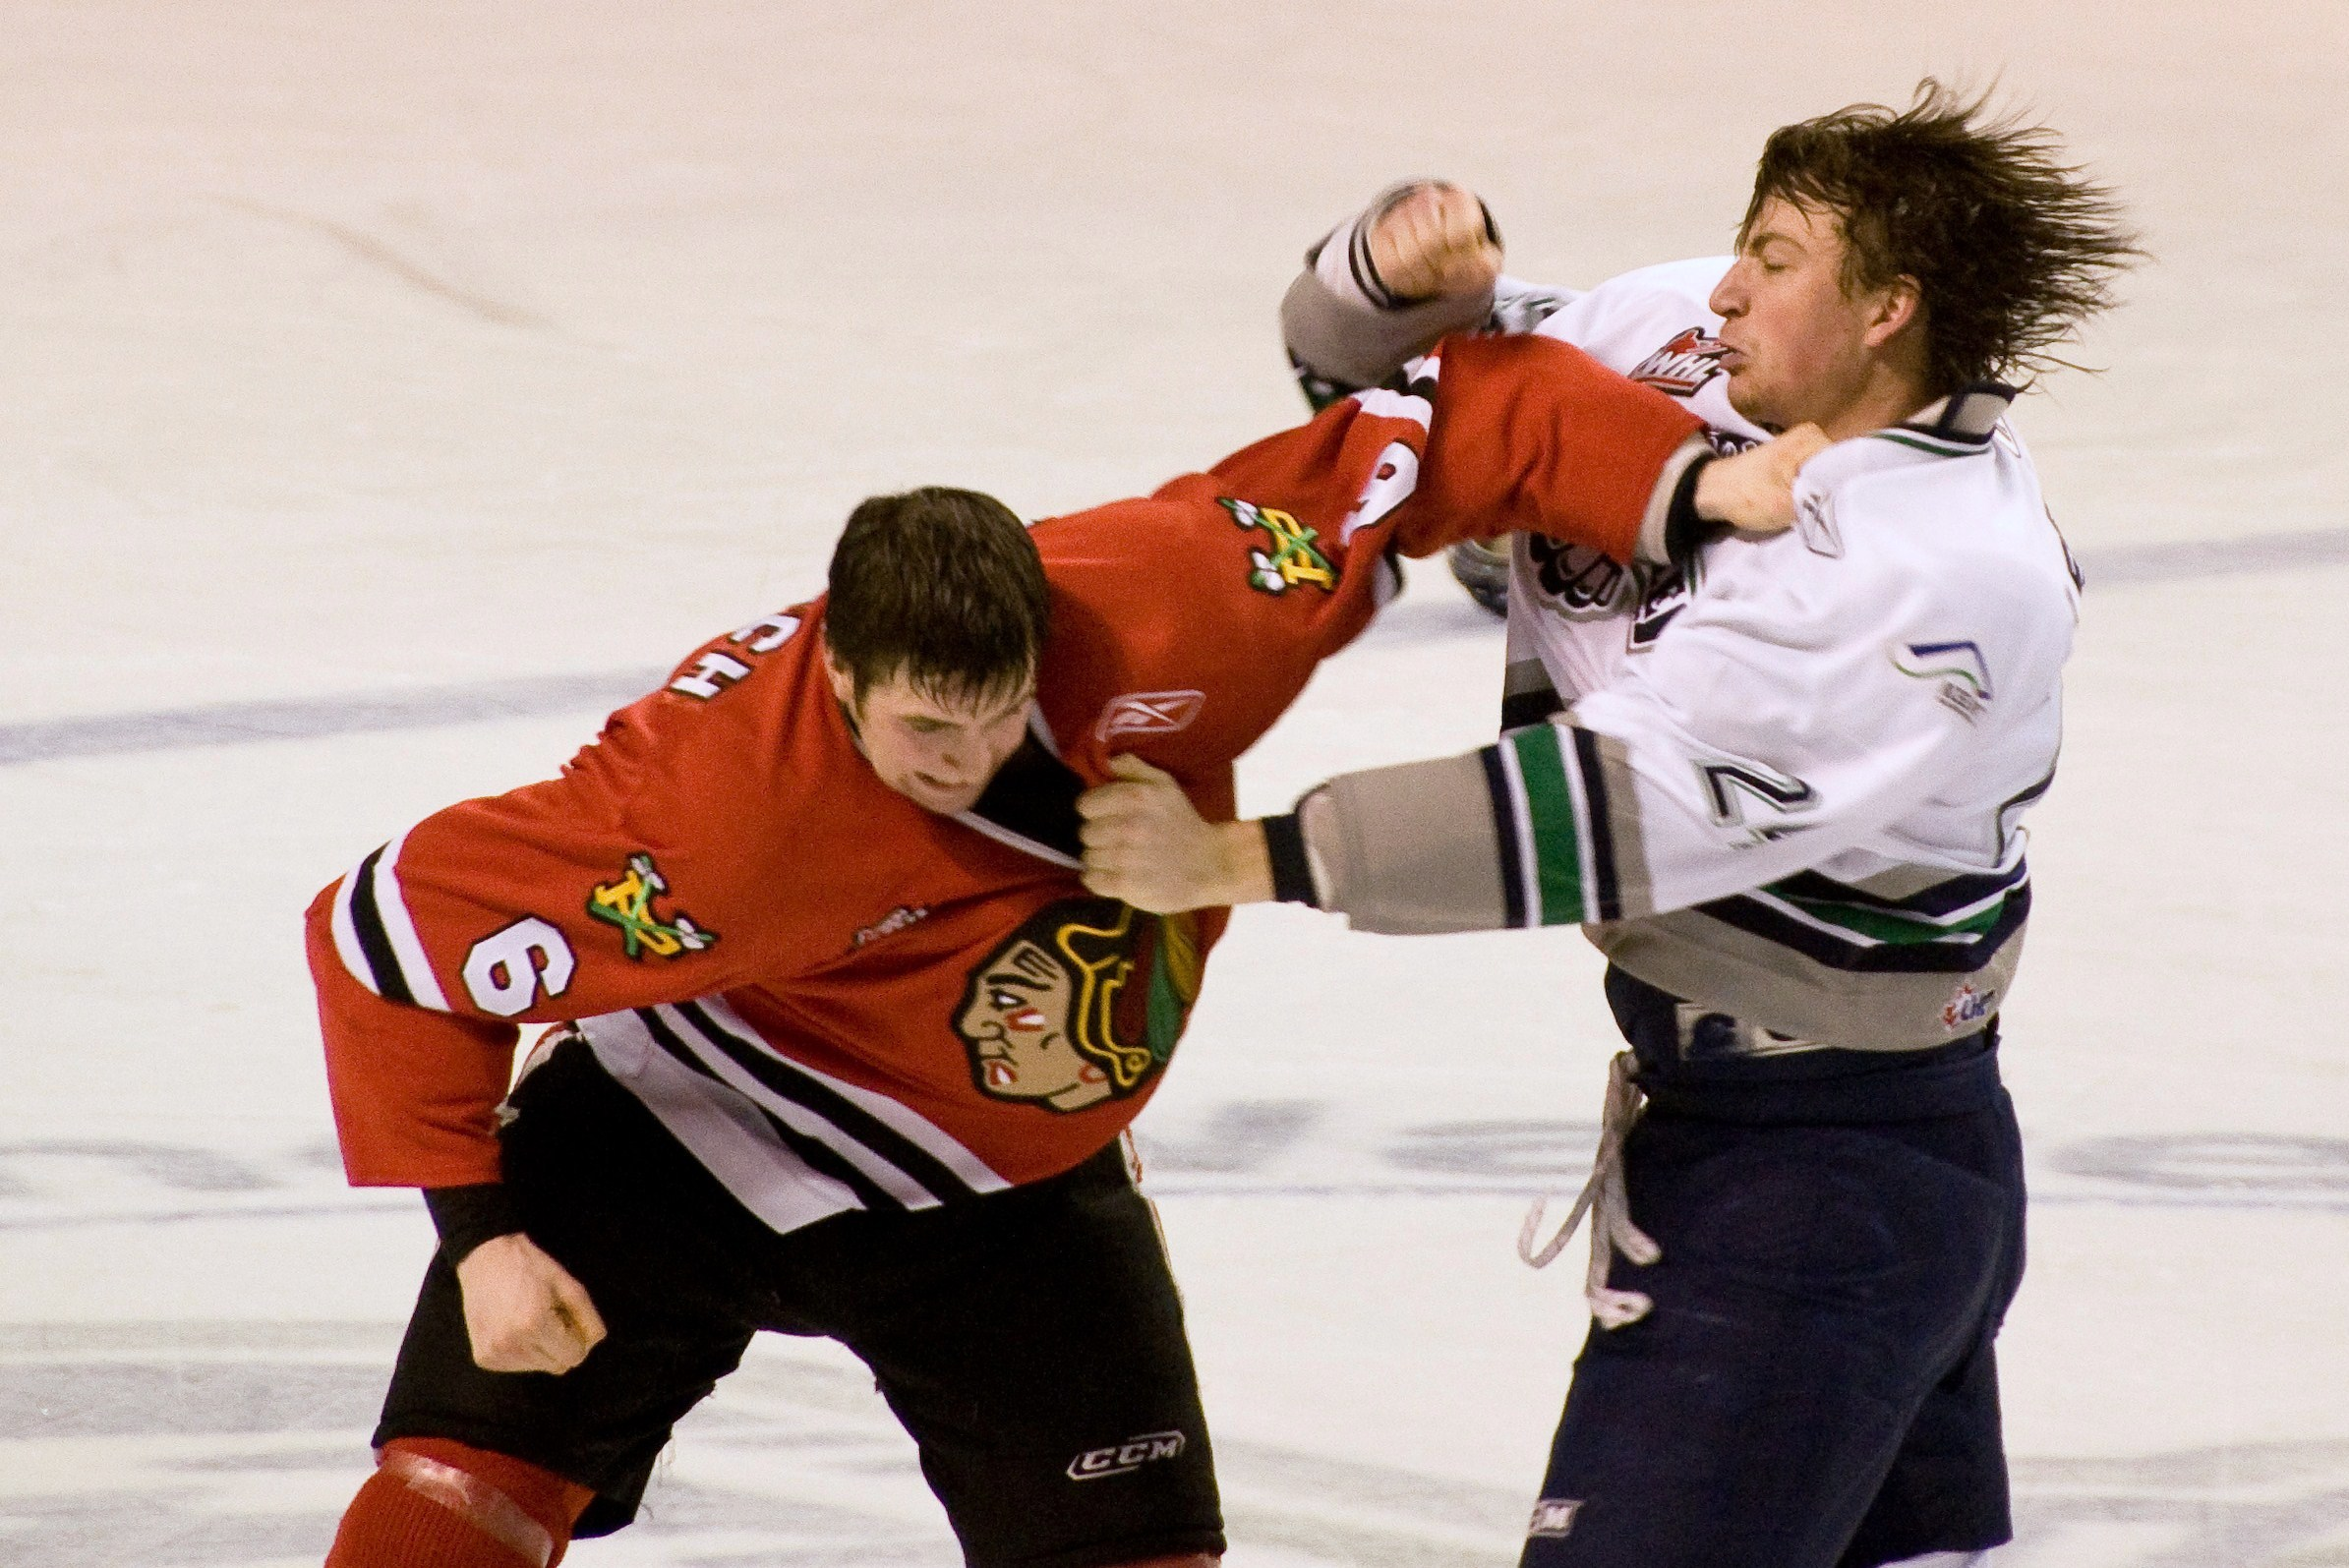 Forced To Fight Cte Claims Another Young Ex Nhl Player American